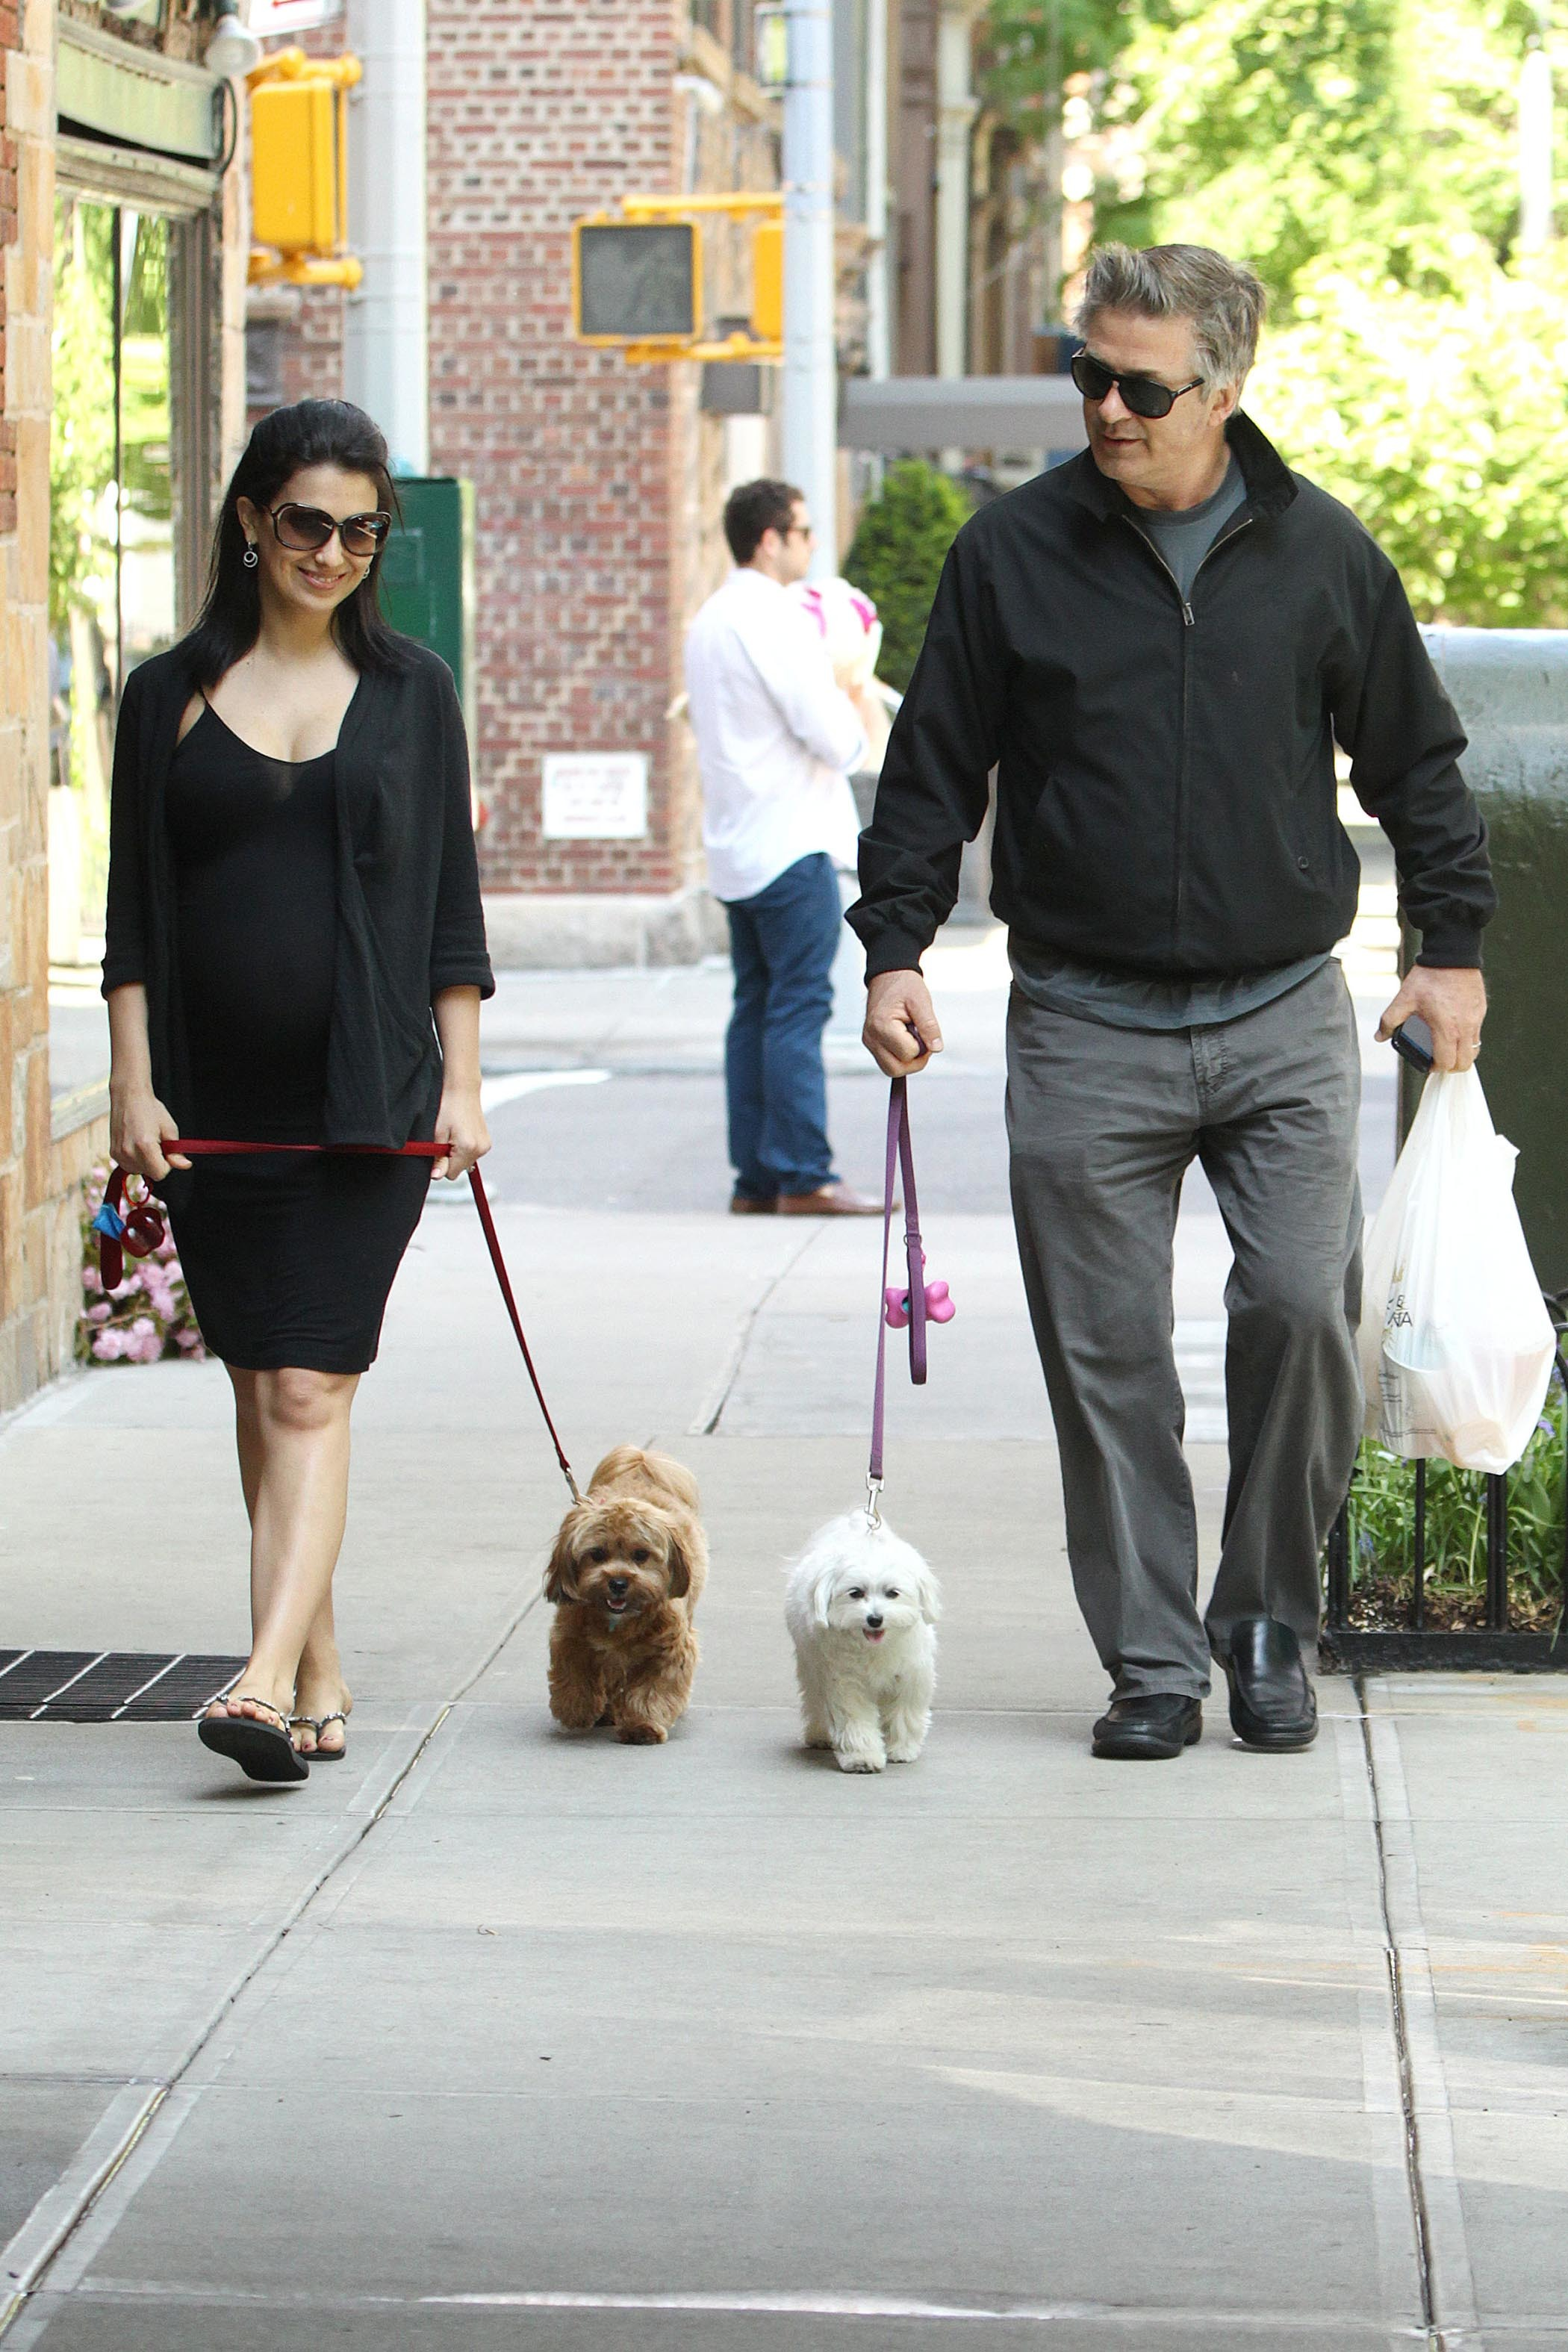 hilaria thomas alec baldwin dog walking